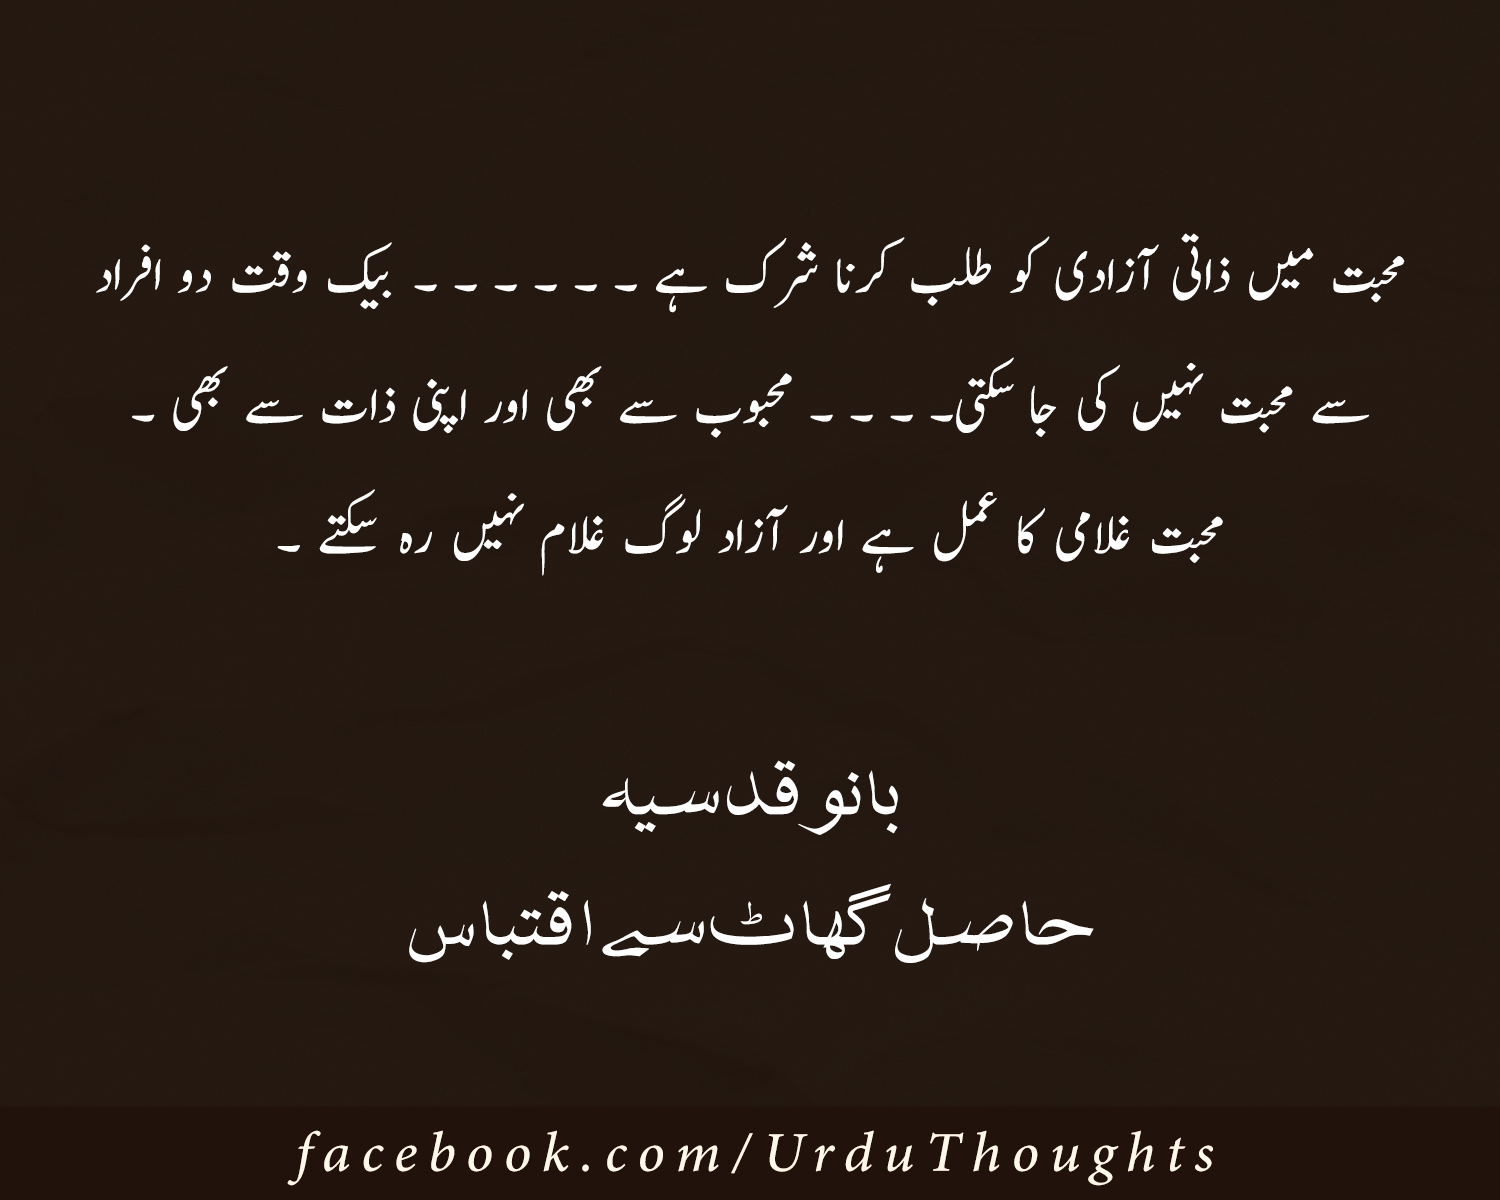 Bano Qudsia Dialogue Famous Urdu Quotes Images Urdu Novels Say Iqtibas Urdu Thoughts